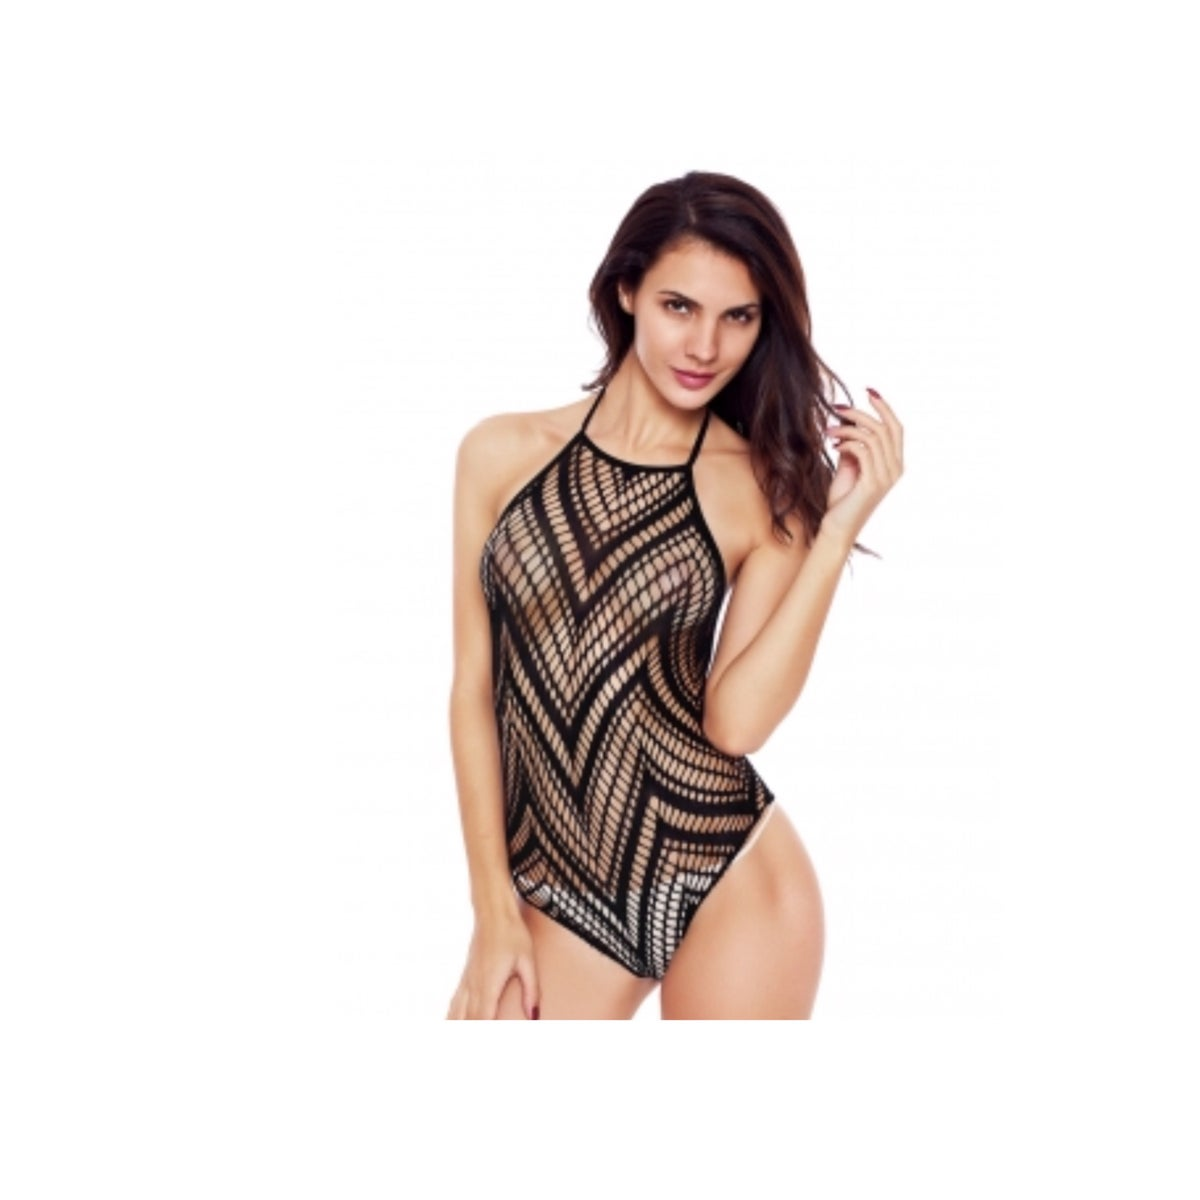 Image of Netted Halter Teddy